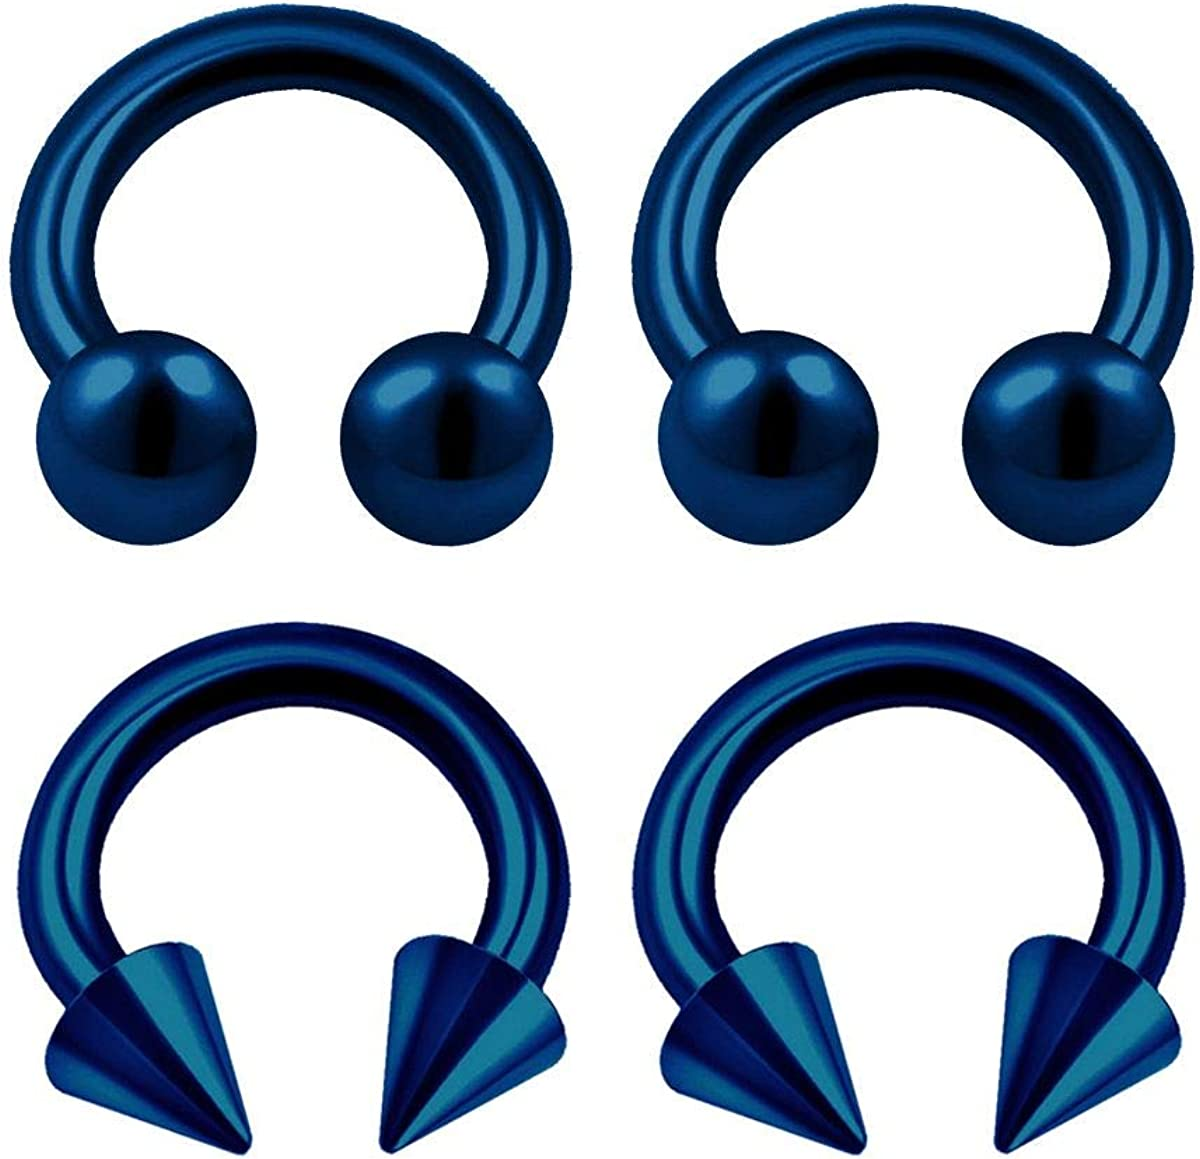 4PCS Surgical Steel Dark Blue Horseshoe Hoop 16 Gauge 3mm Ball Cone Tragus Rook Earrings Nose Piercing Jewelry See More Sizes